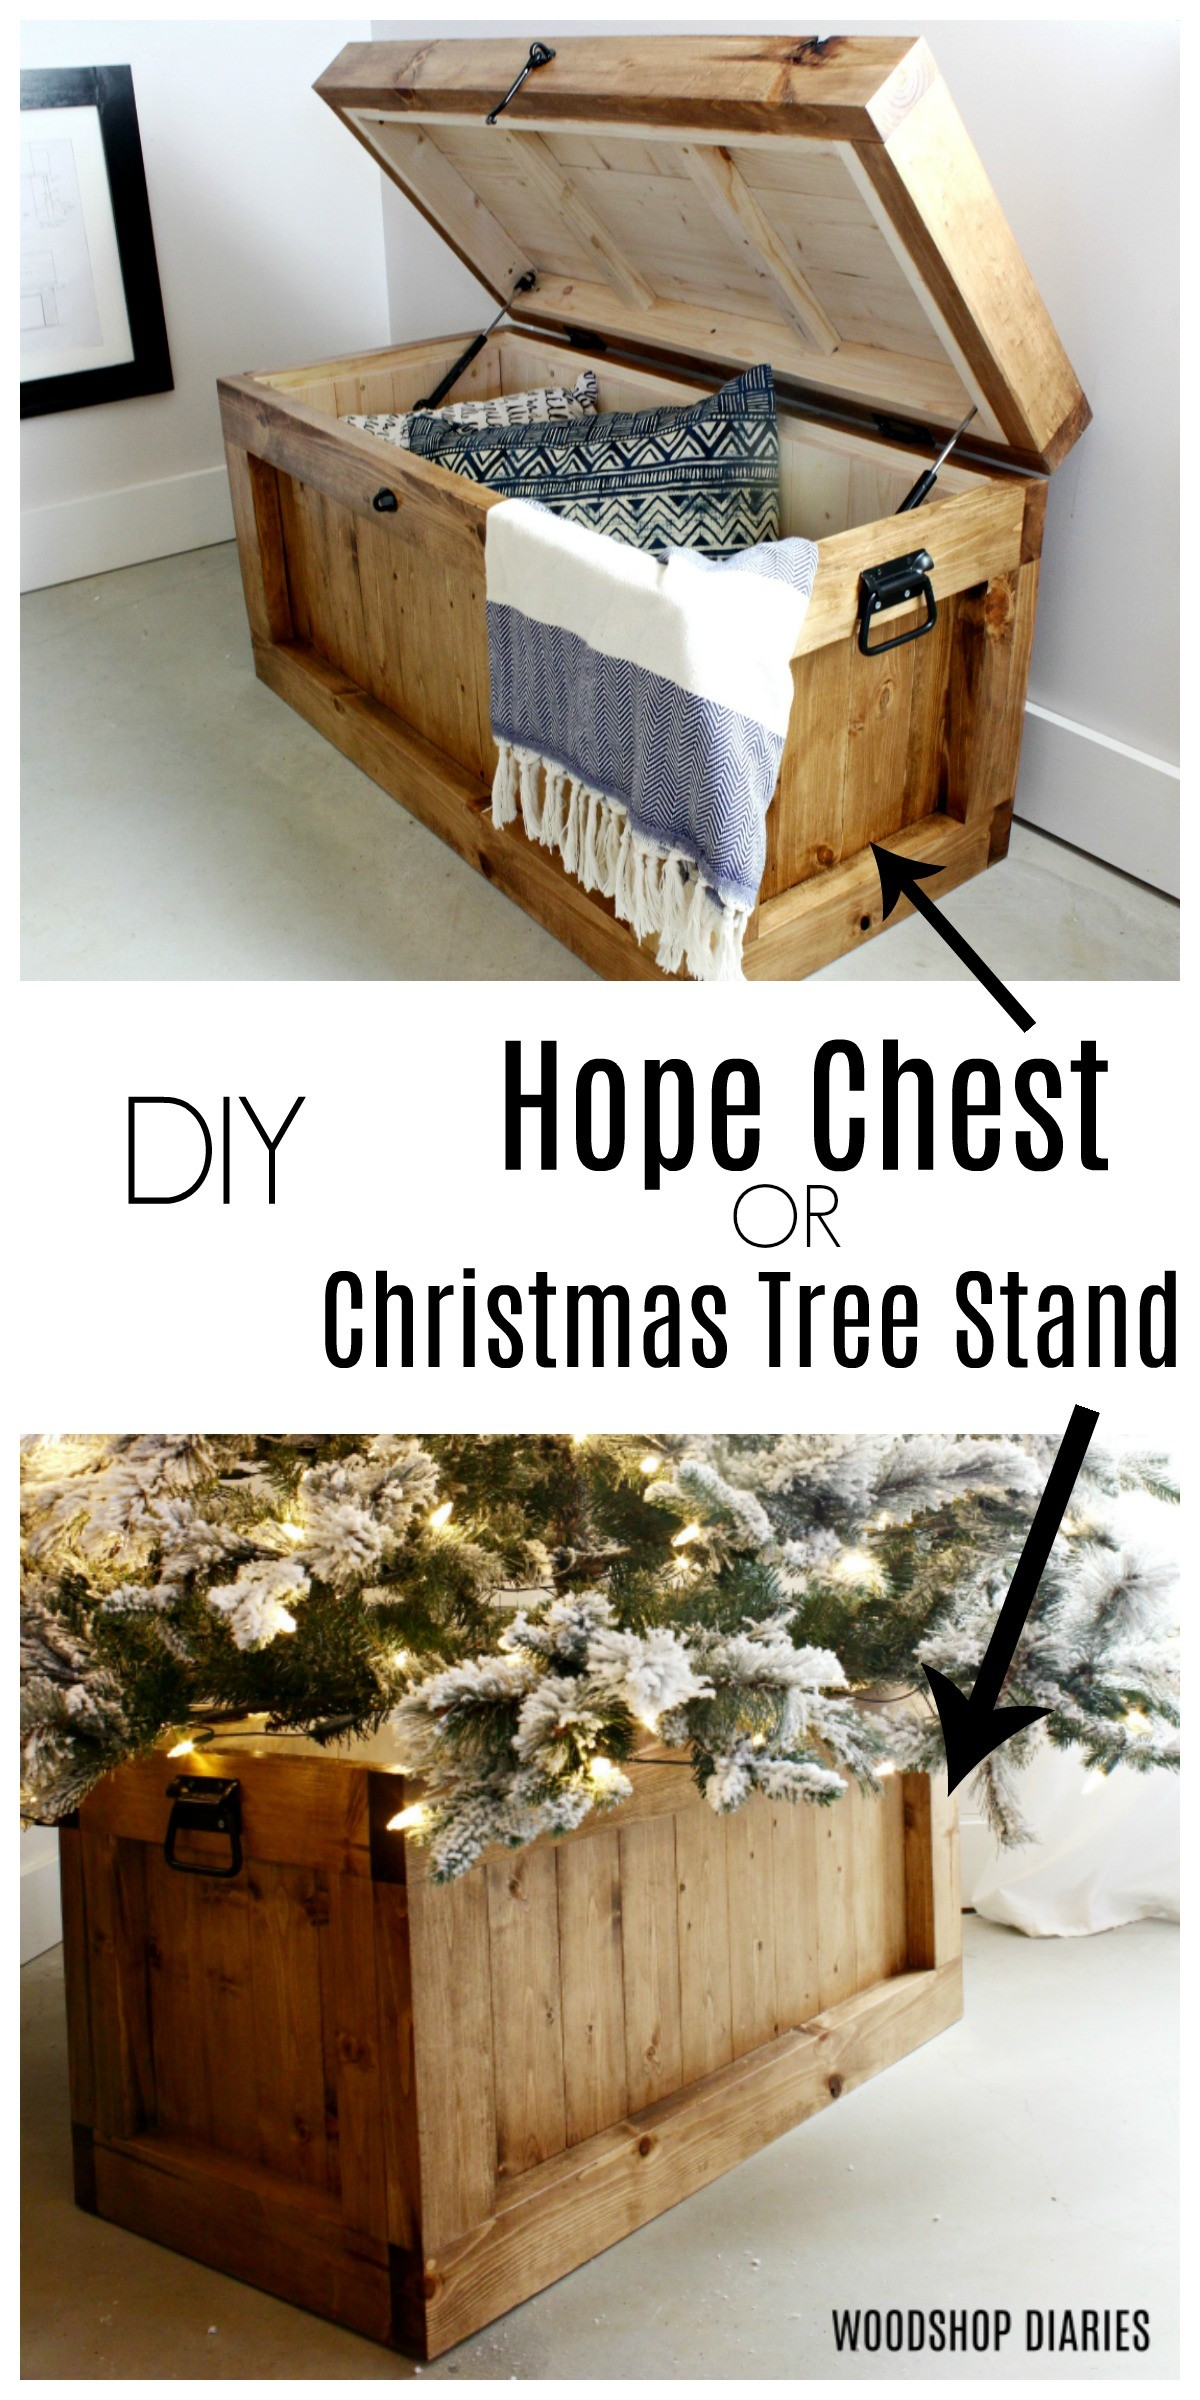 How to Build Your Own DIY Hope Chest or Christmas Tree Stand Box